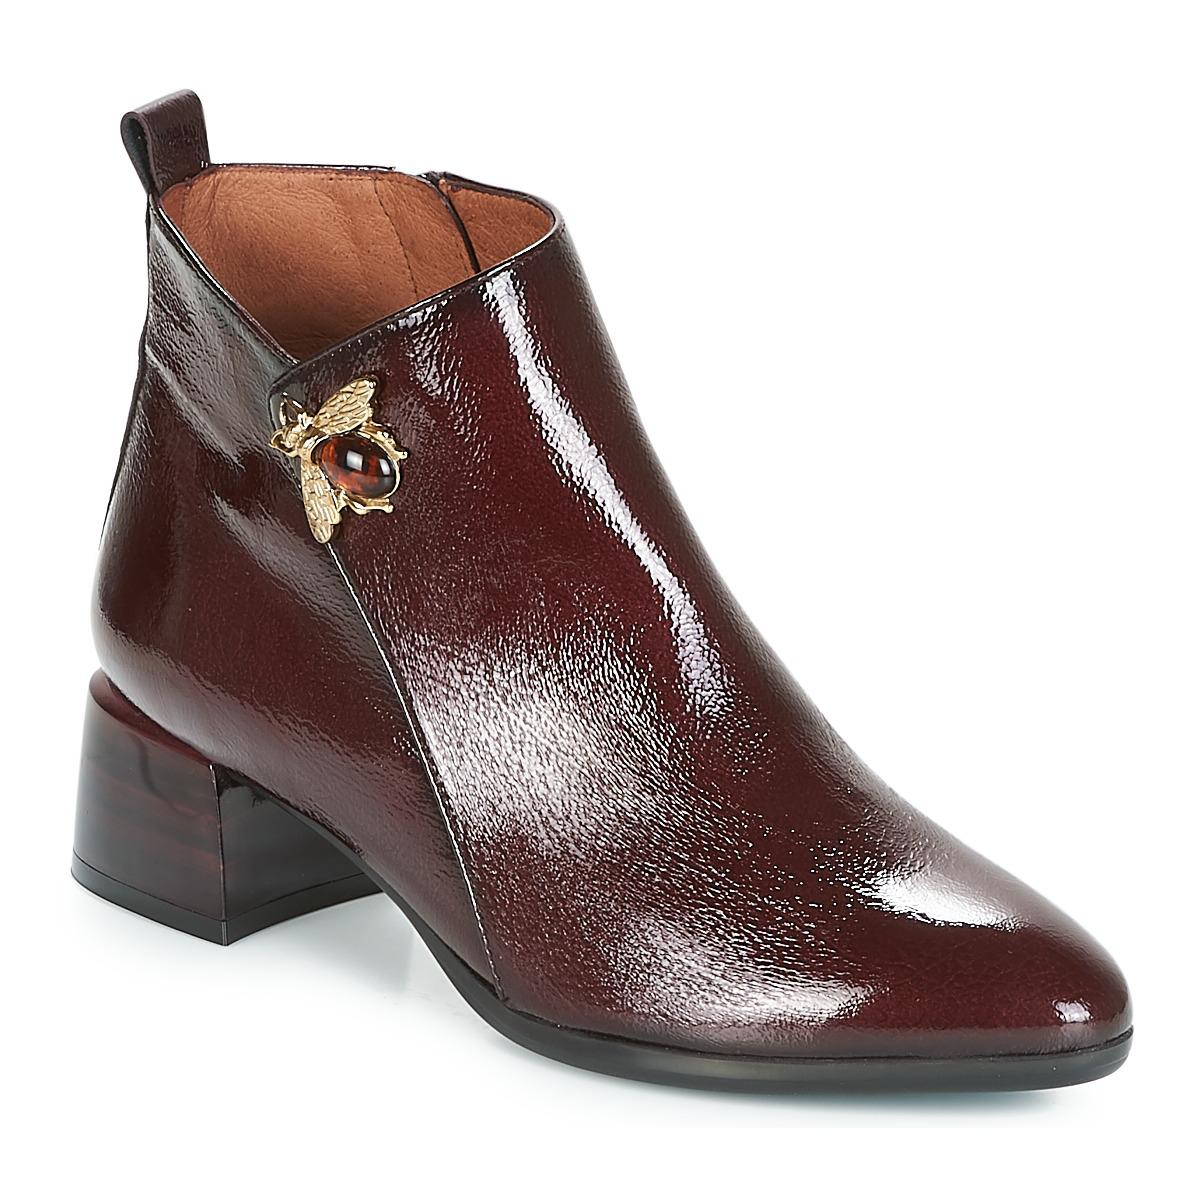 5d78bcecd4ac Hispanitas Ginger Low Ankle Boots in Red - Lyst